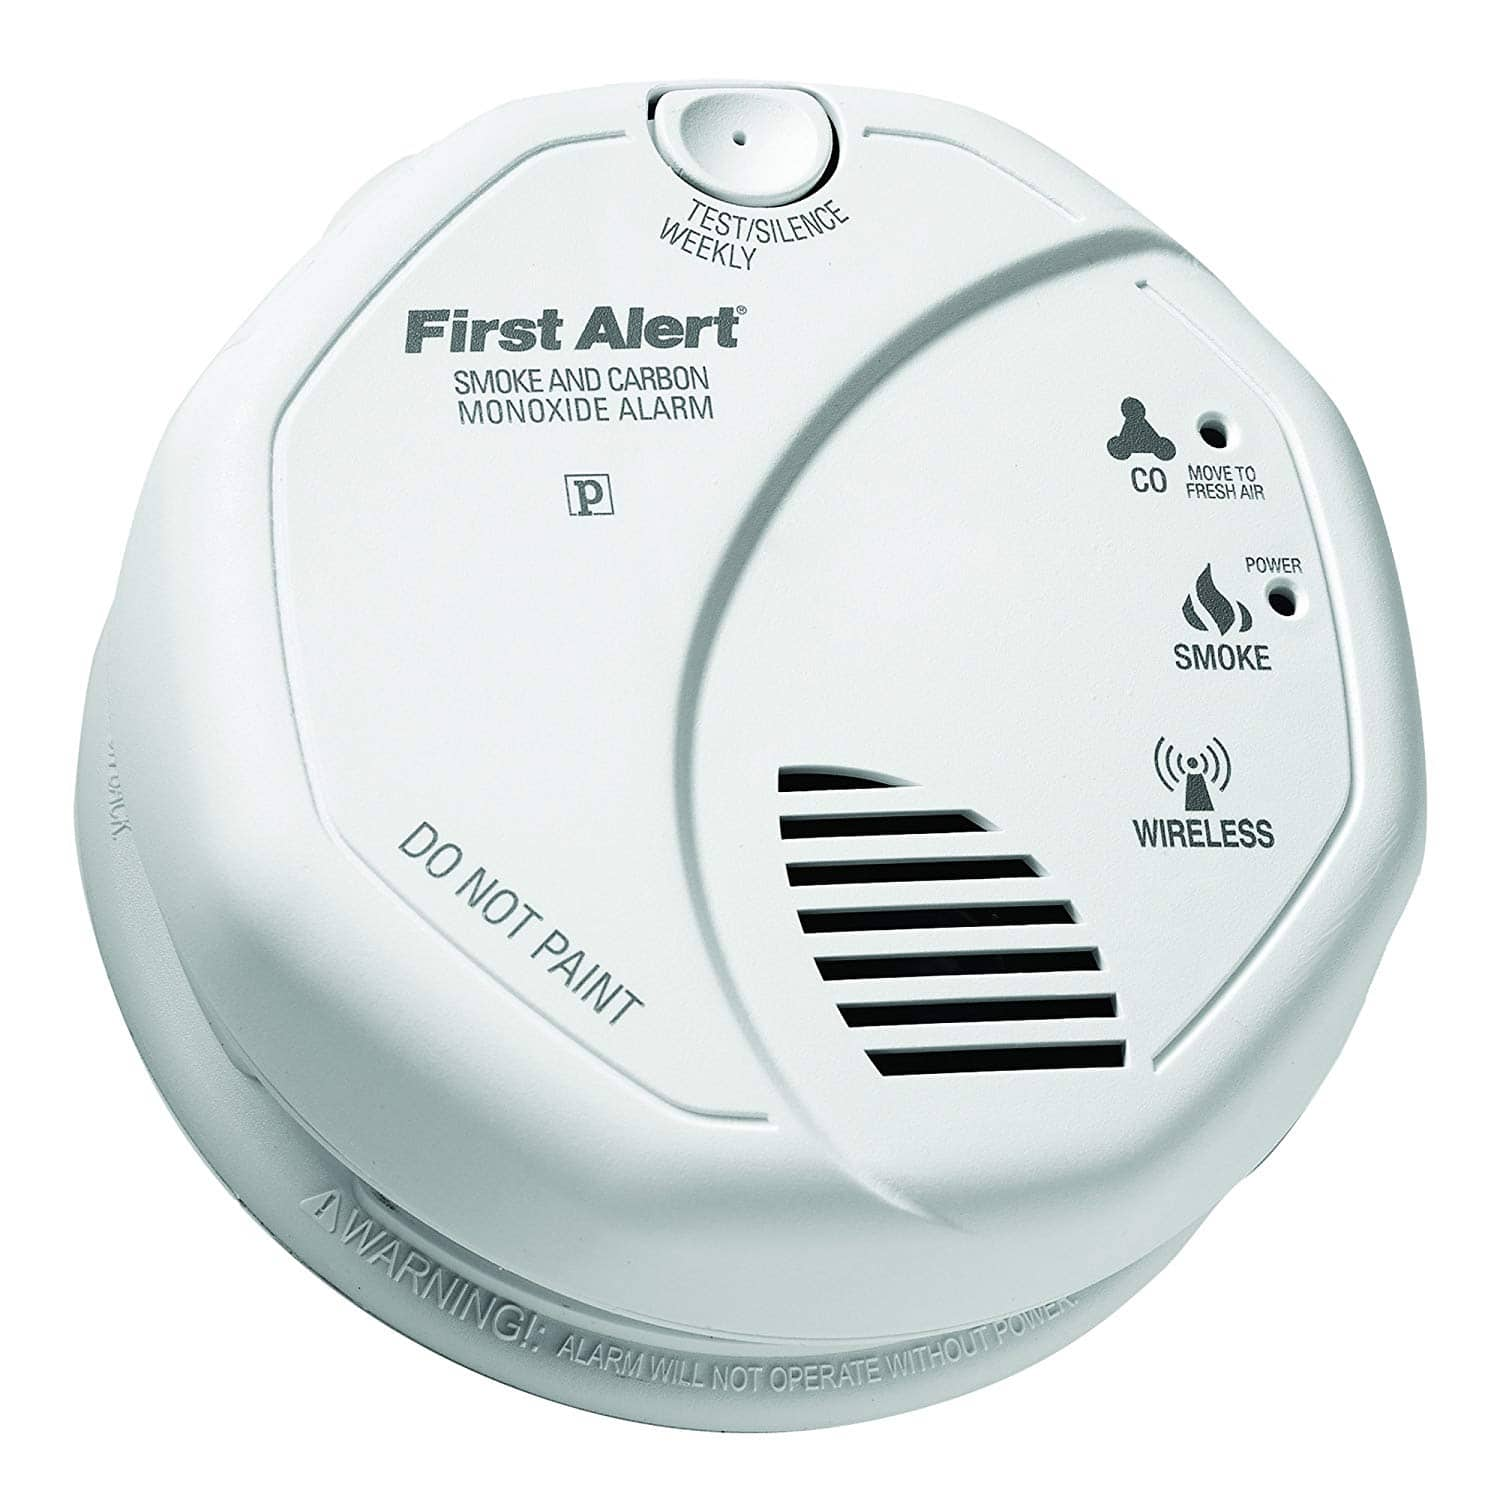 First Alert 2-in-1 Smoke and Carbon Monoxide Alarms $36.99